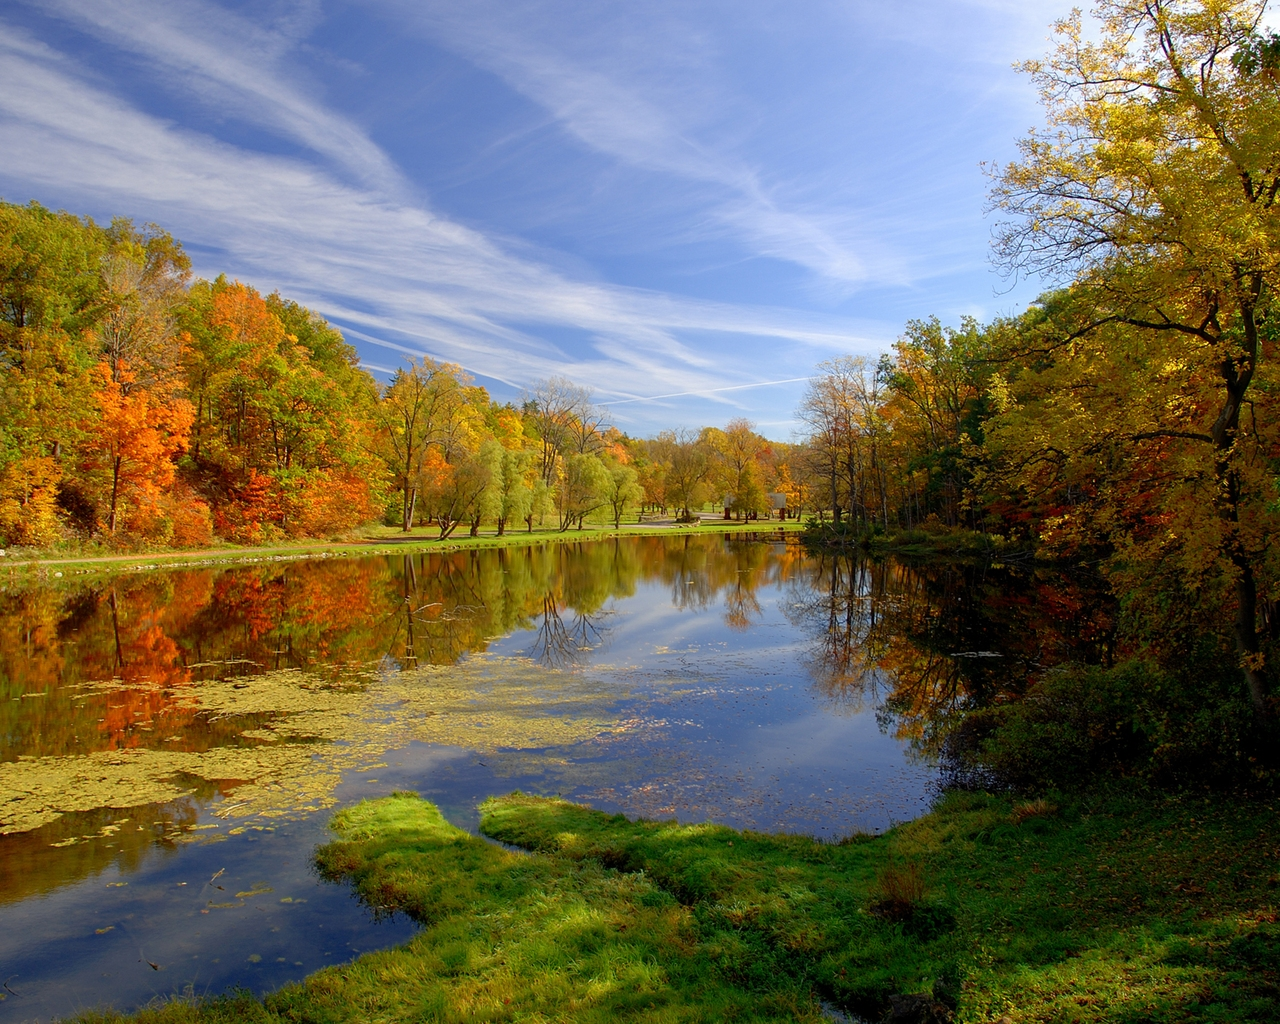 landscape autumn hd wallpaper - photo #20